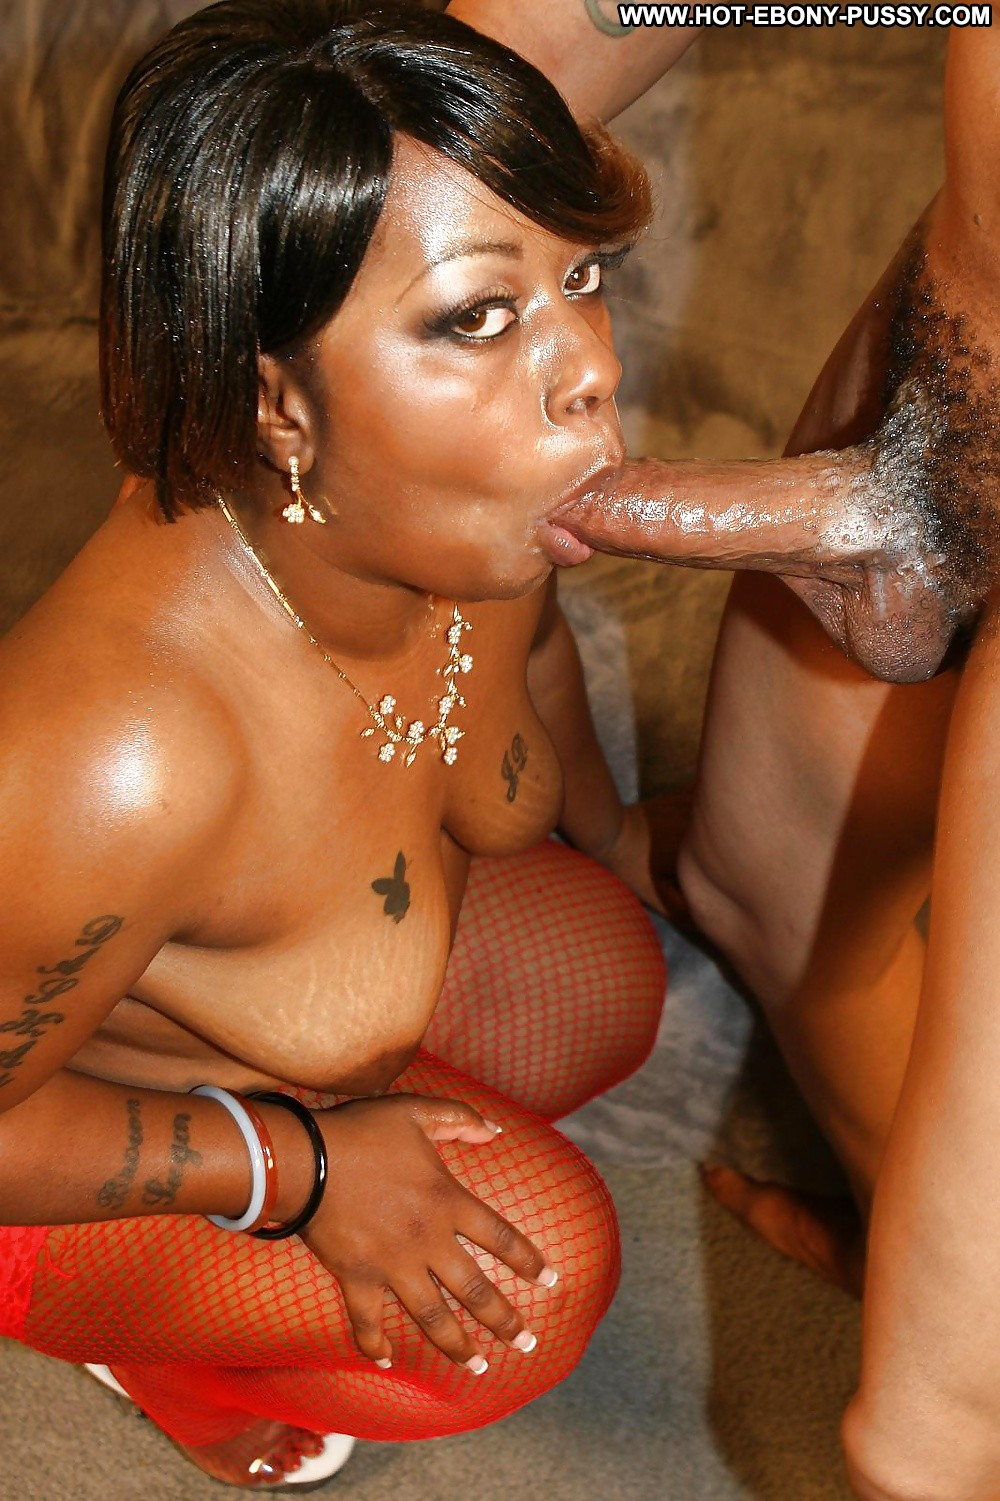 Elsa Private Pics Ebony Black Ethnic Milf Bbw-6641